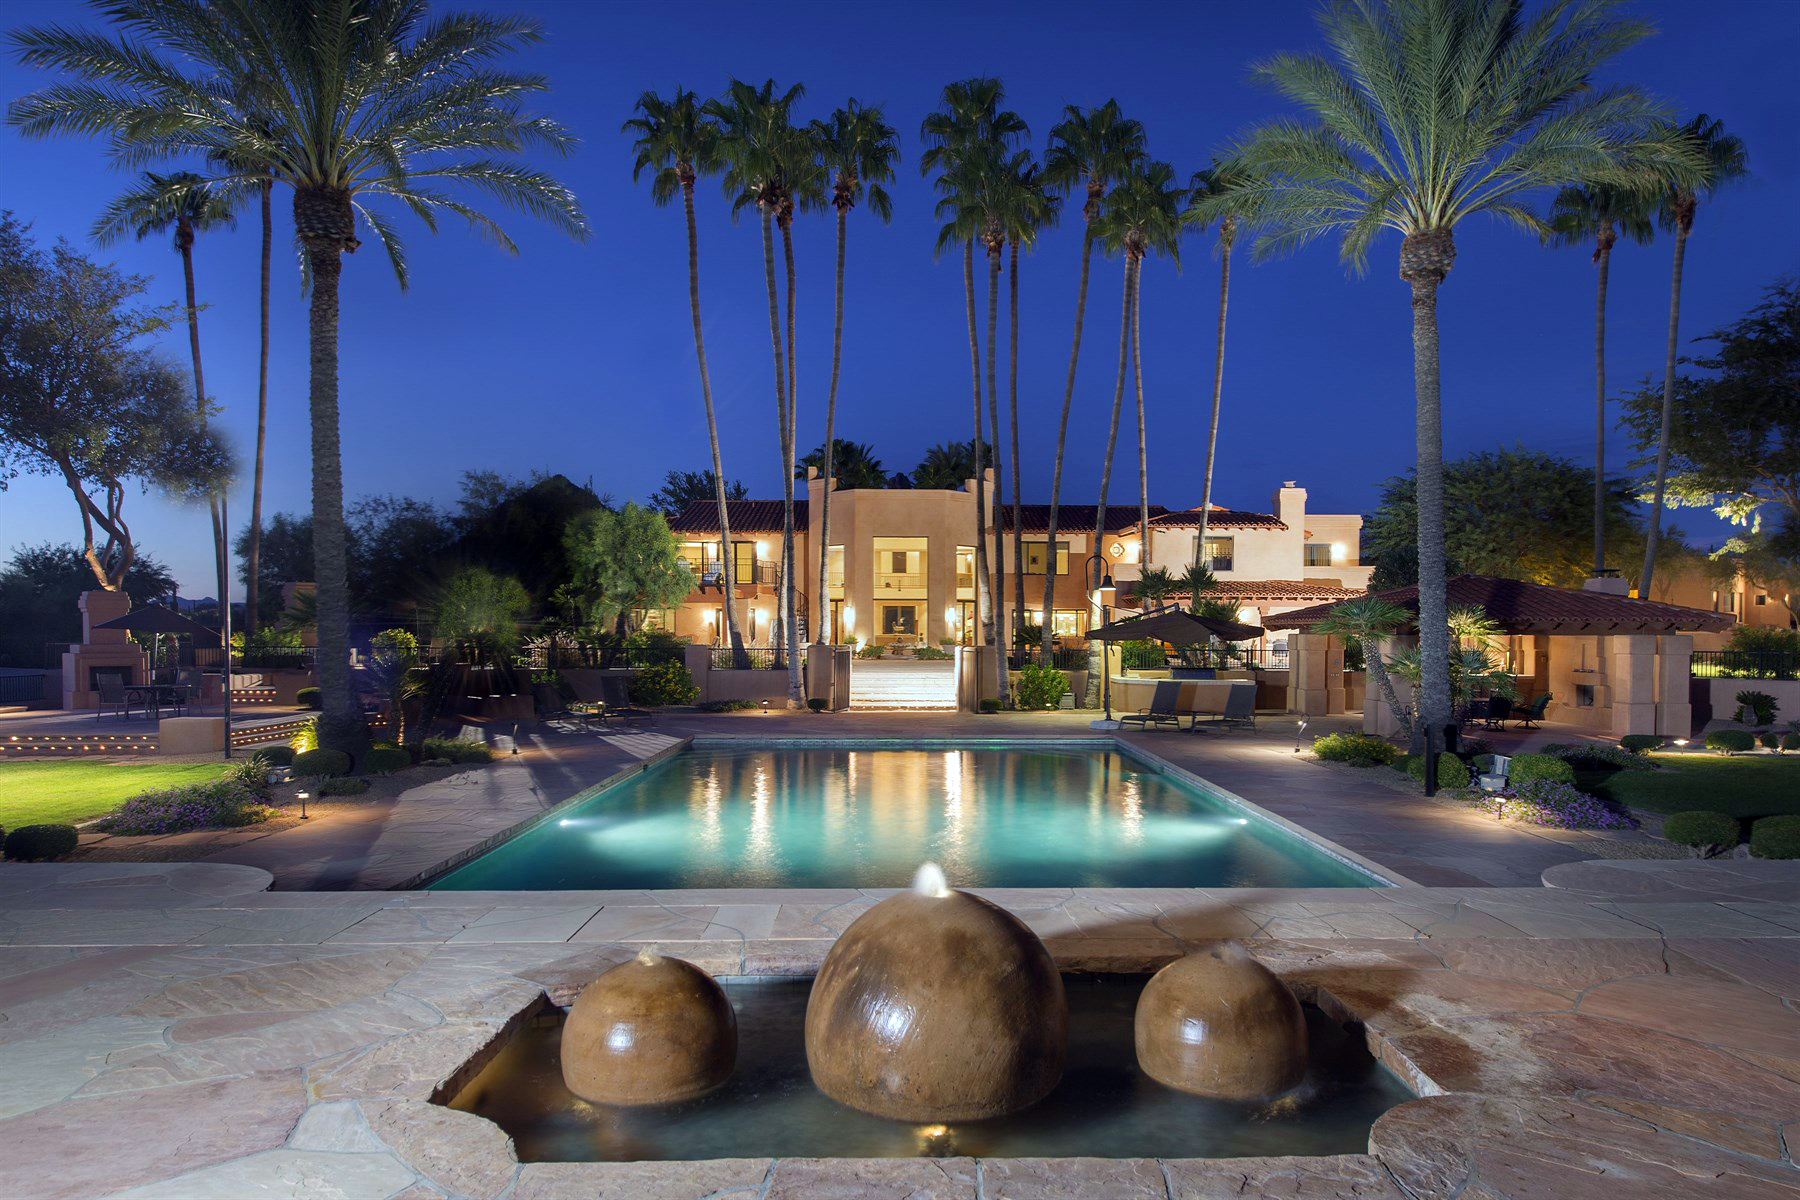 Villa per Vendita alle ore Equestrian Luxury Living on 12 Glorious Acres Representing Oasis Ranch 10015 E Happy Valley Rd Scottsdale, Arizona 85255 Stati Uniti